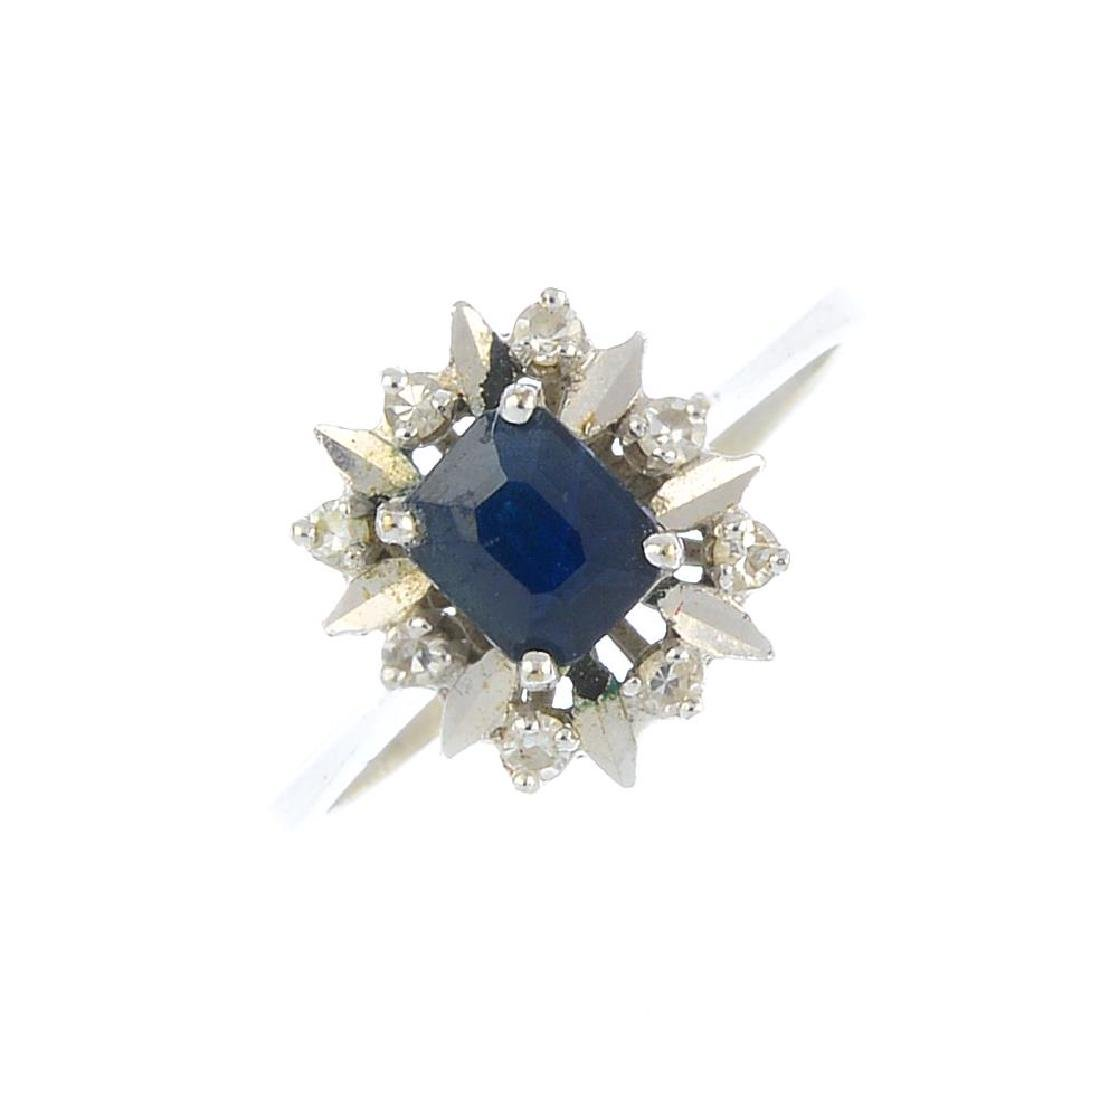 A sapphire and diamond cluster ring. The